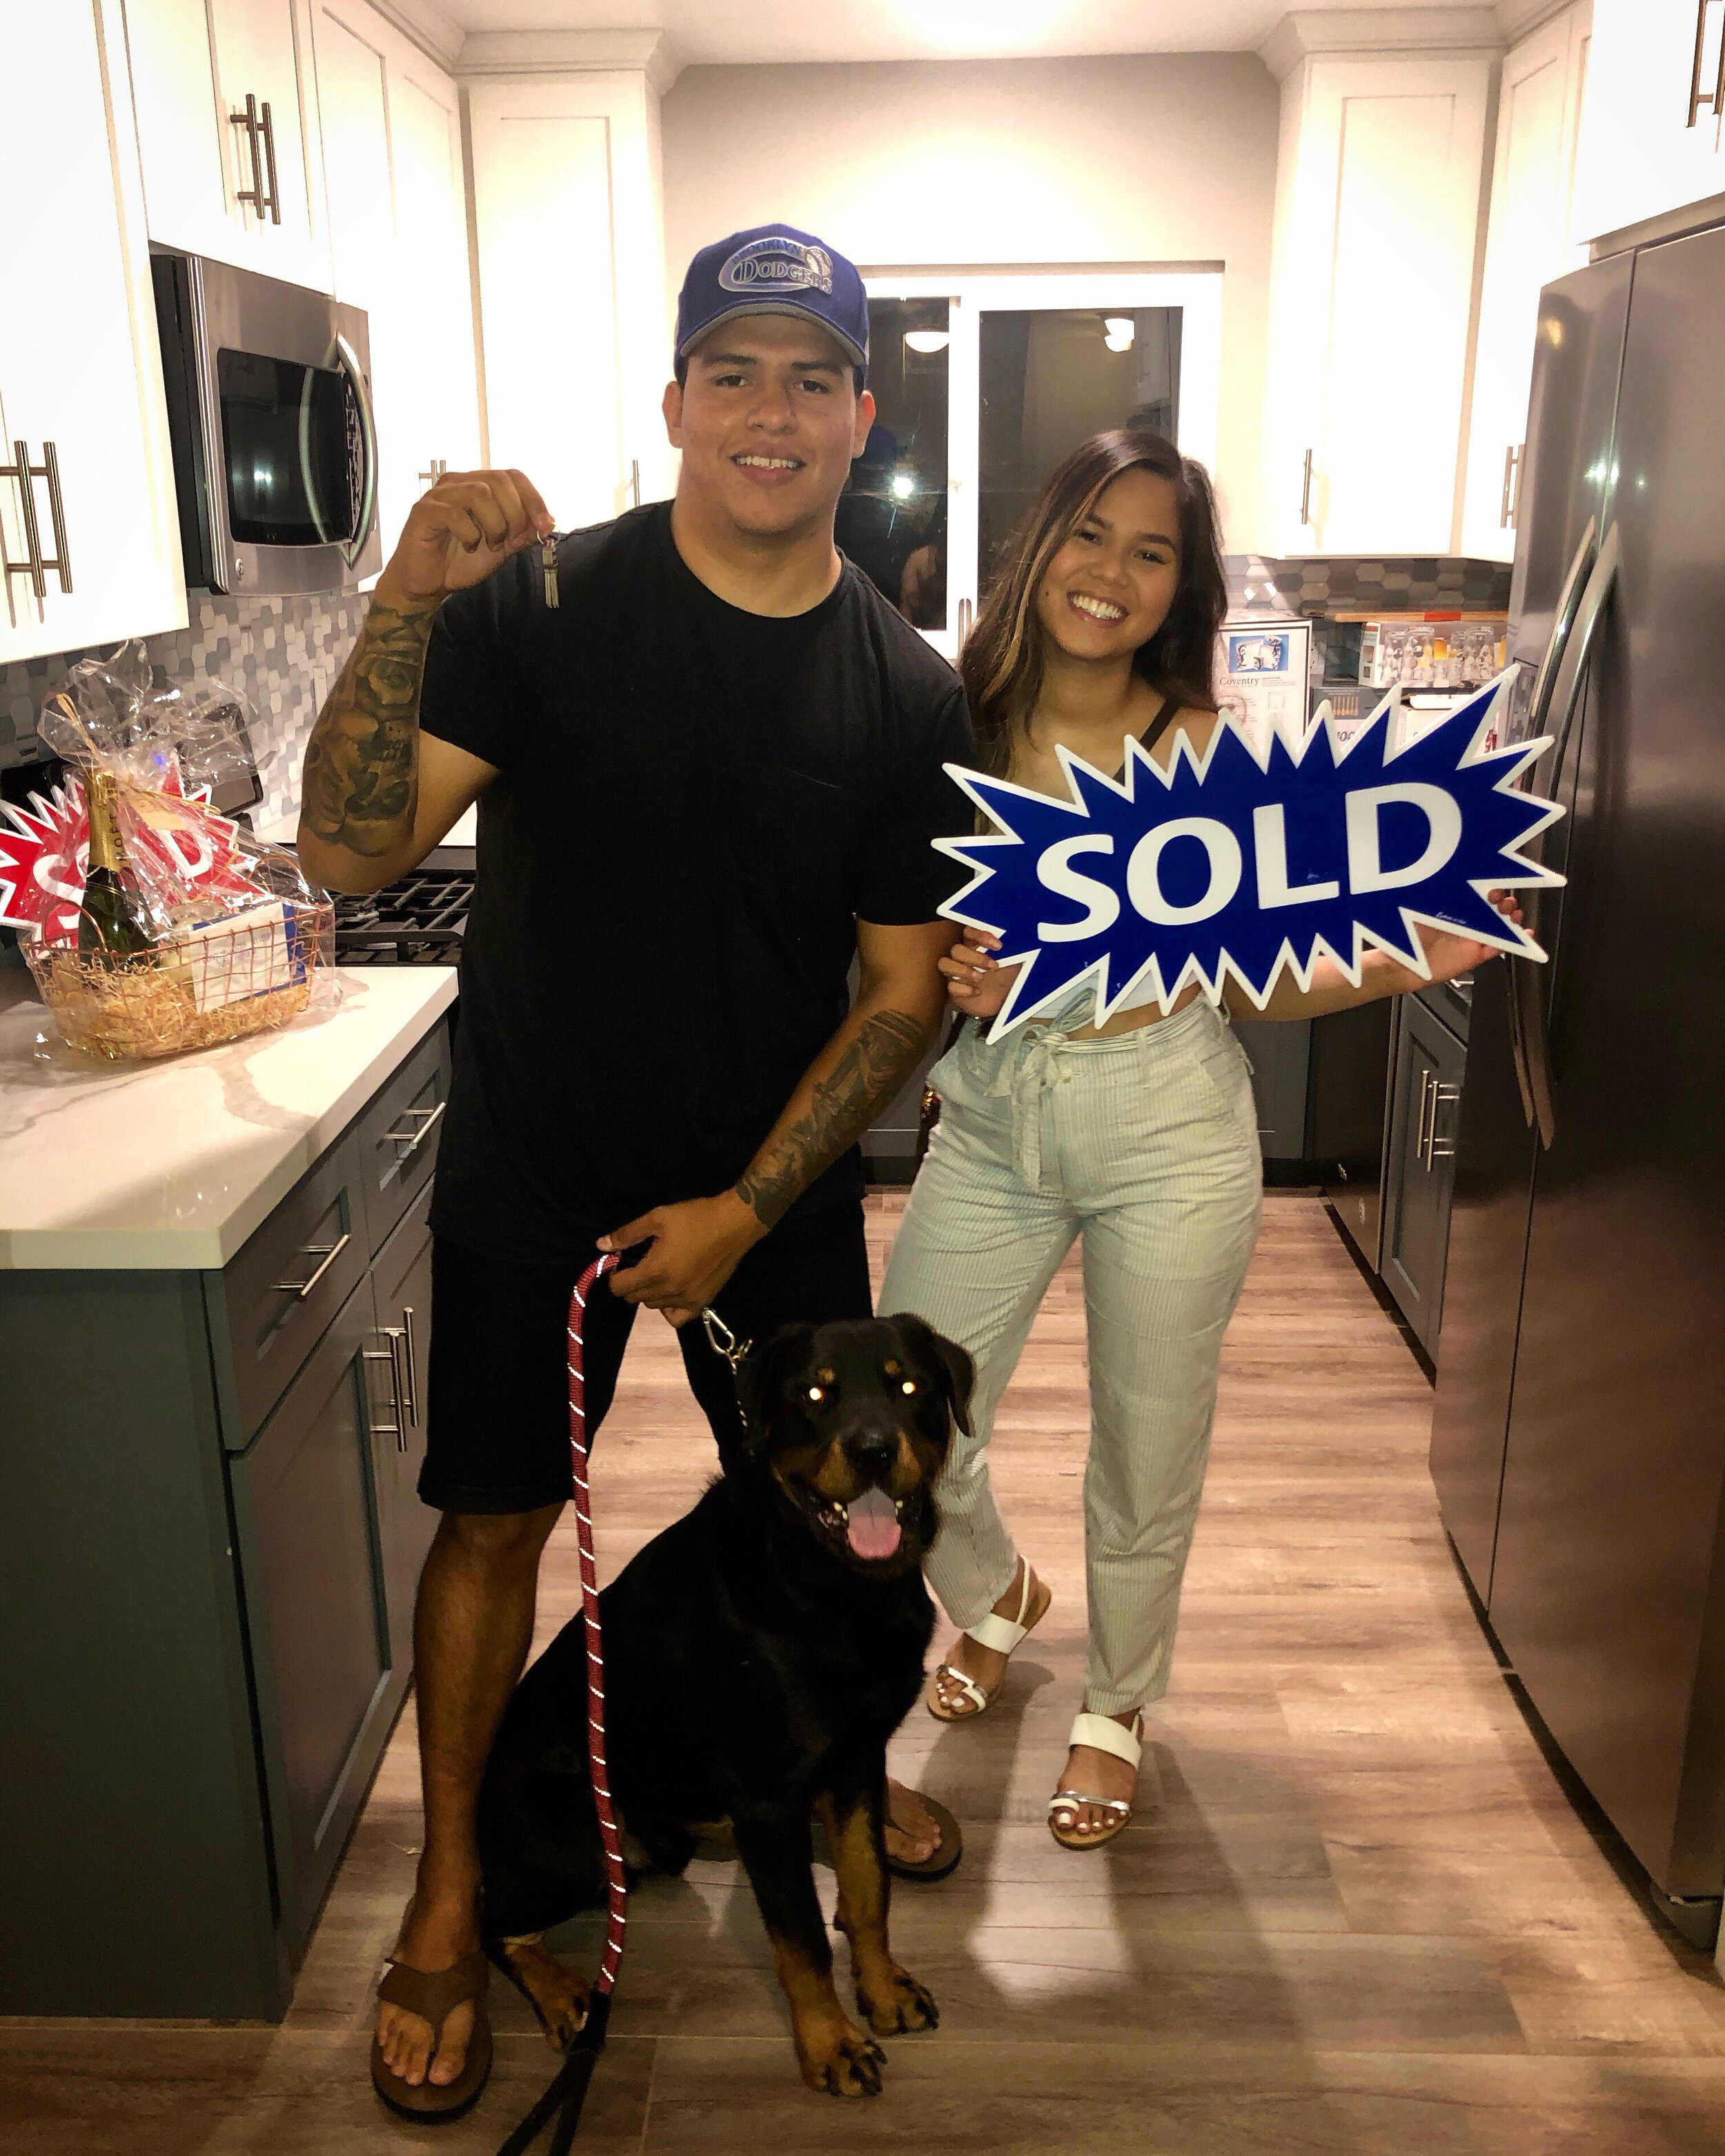 Who You Work With Matters - As told by Nikole Ferrari (Buyers Agent)WELCOME HOME MAX, LILO & CHAPO! Another life changed! So excited for my client Max on the purchase of his first home! Max is 24 years old and is currently serving in the United States Navy as Hull Technician Petty Officer 2nd Class. He has been serving for 6 years now! Max and I began his search for a home in April and after a few months were able to get an offer accepted on a beautiful remodeled home in Chula Vista. Not only were we able to negotiate that the seller pay all of our closing costs but the house also appraised $10k higher than our purchase price therefore giving Max the pleasure of walking into his new home with $10k of equity in his pocket. Who you work with matters!! Sending all my love to these new homeowners! So excited for what lies ahead!